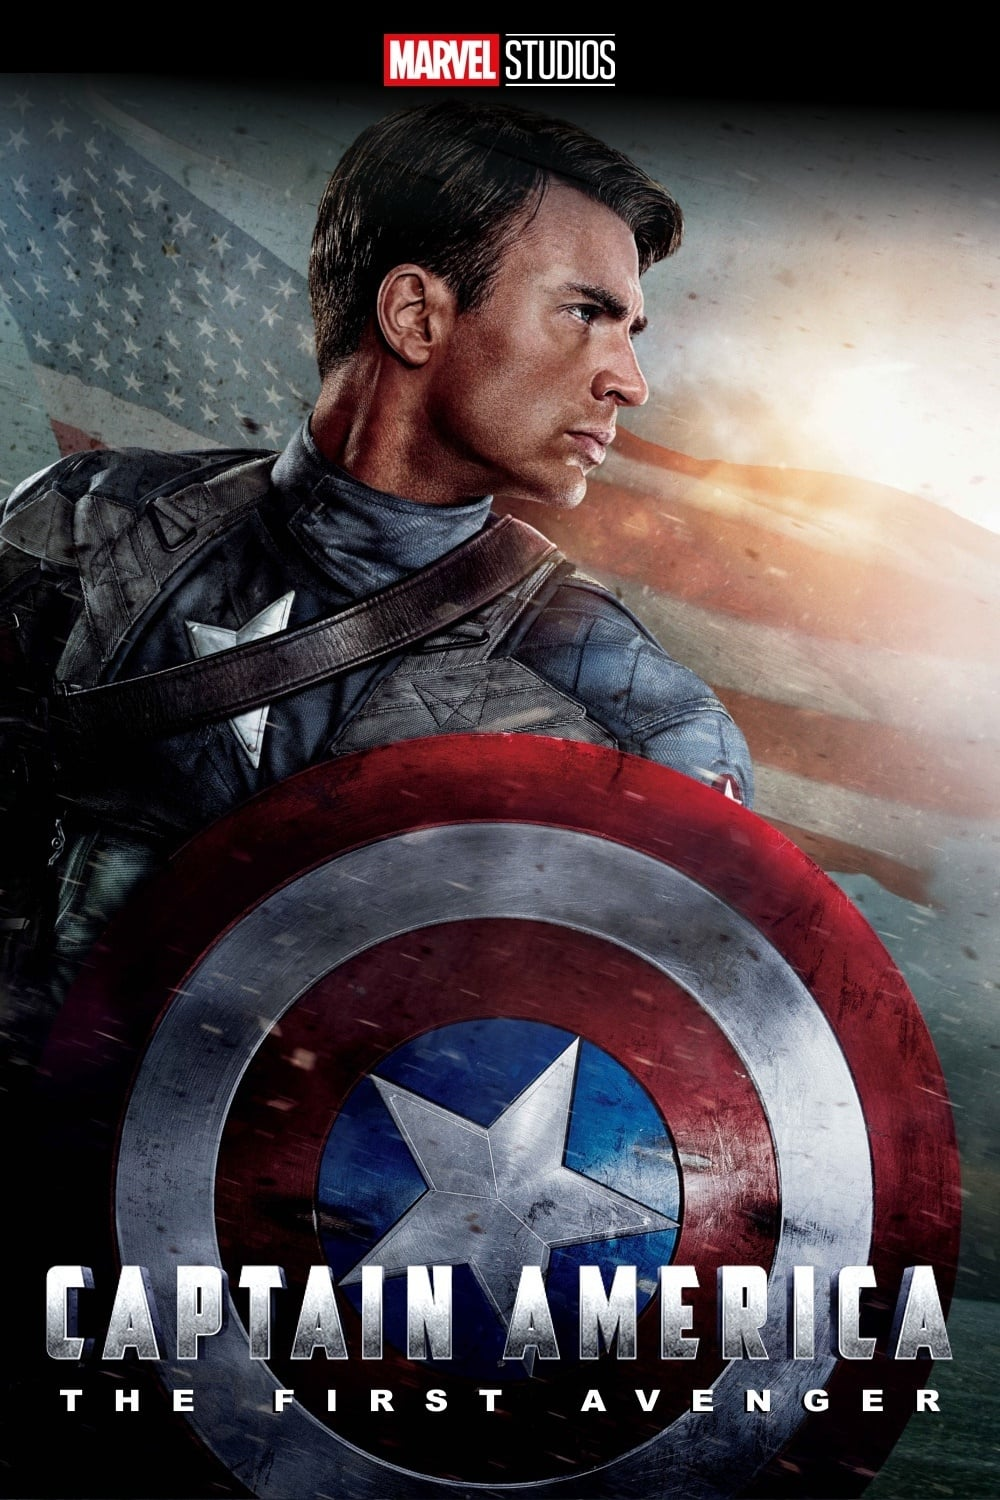 Captain America: The First Avenger (2011) - Vodly Movies